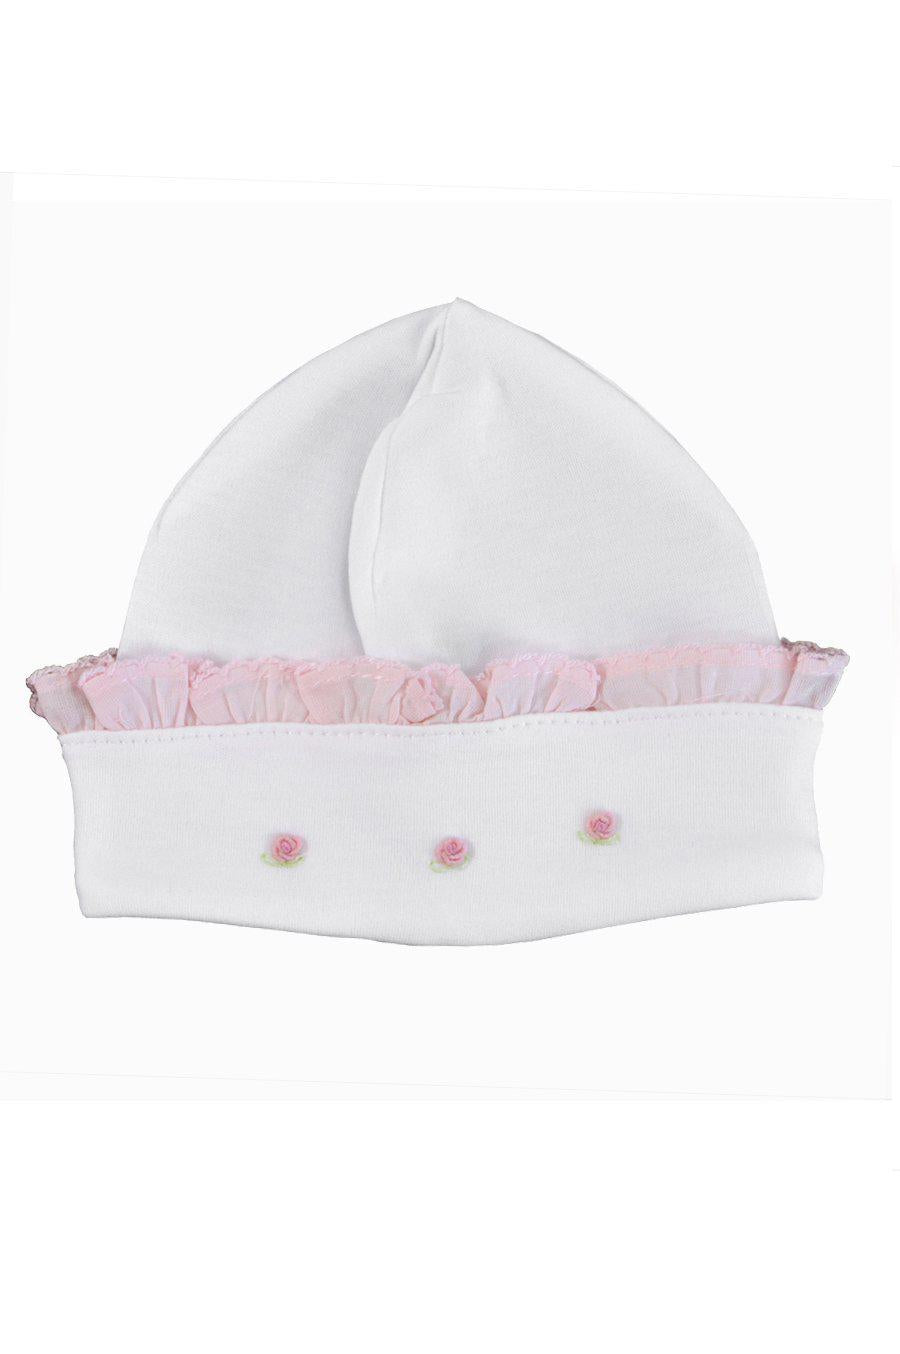 Rosebuds Hat with Pink Trim - Little Threads Inc. Children's Clothing